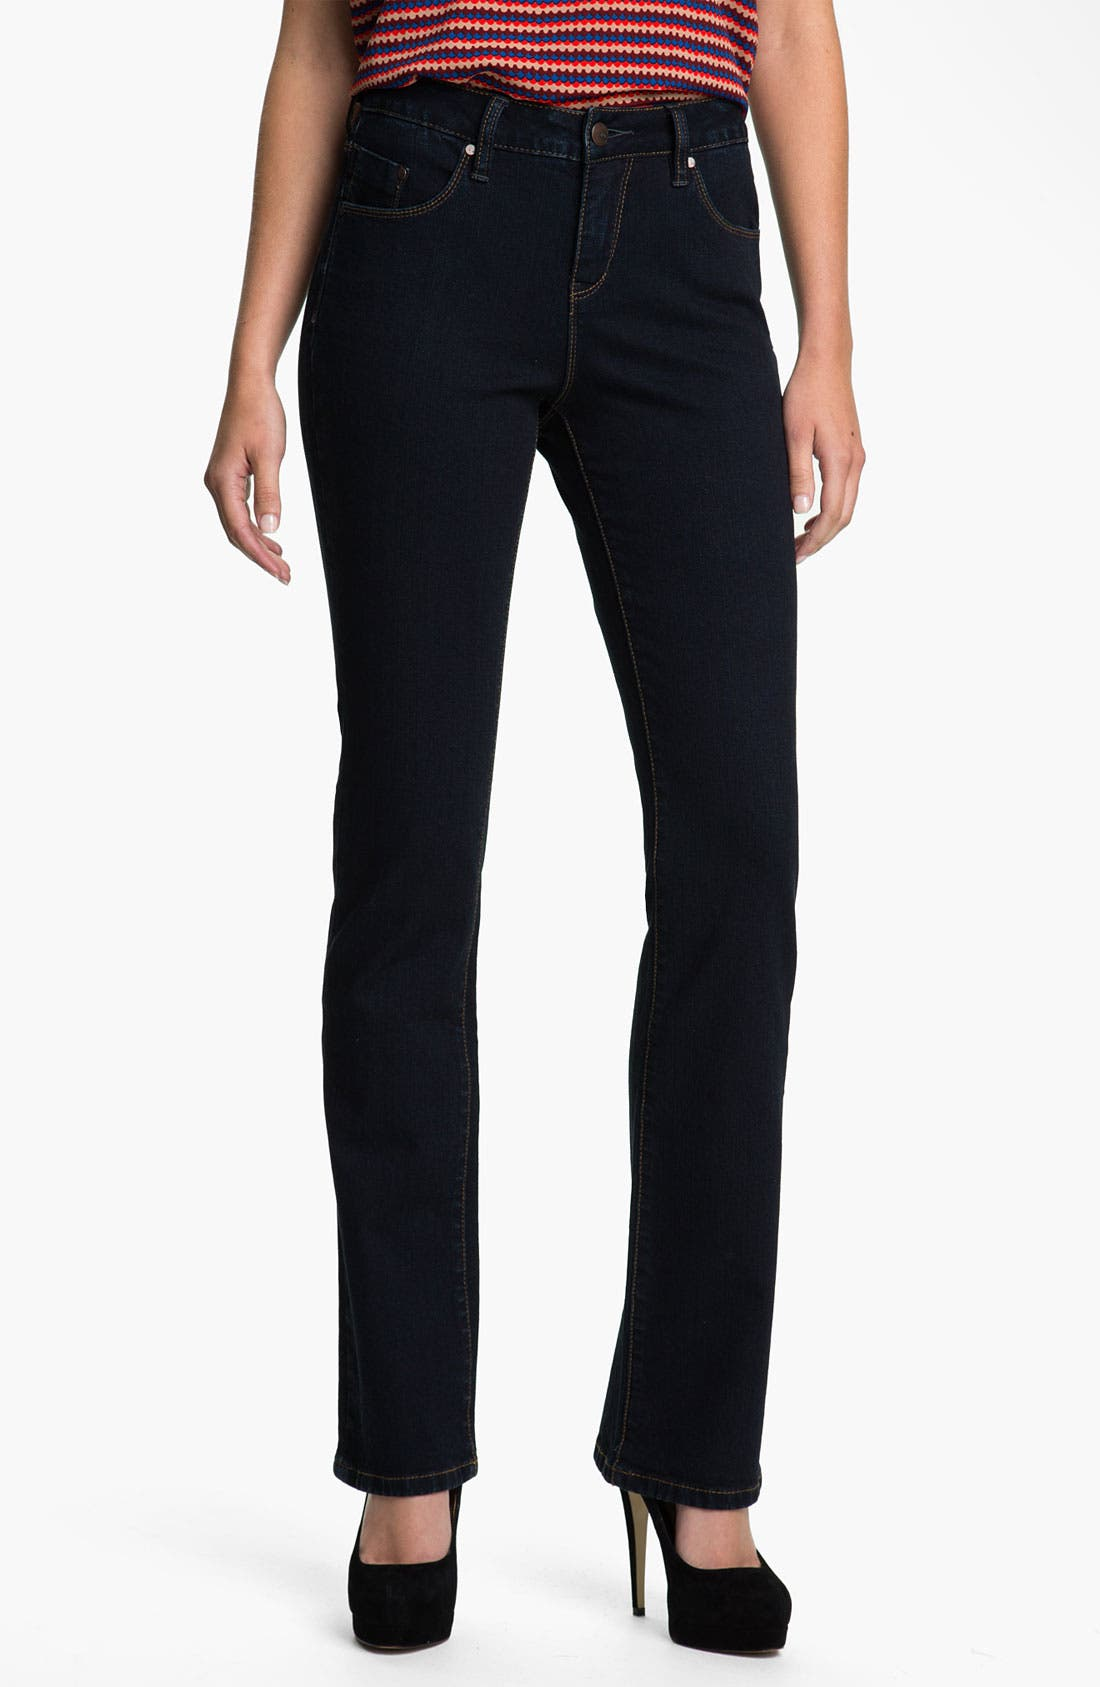 Alternate Image 1 Selected - Jag Jeans 'Foster' Narrow Bootcut Jeans